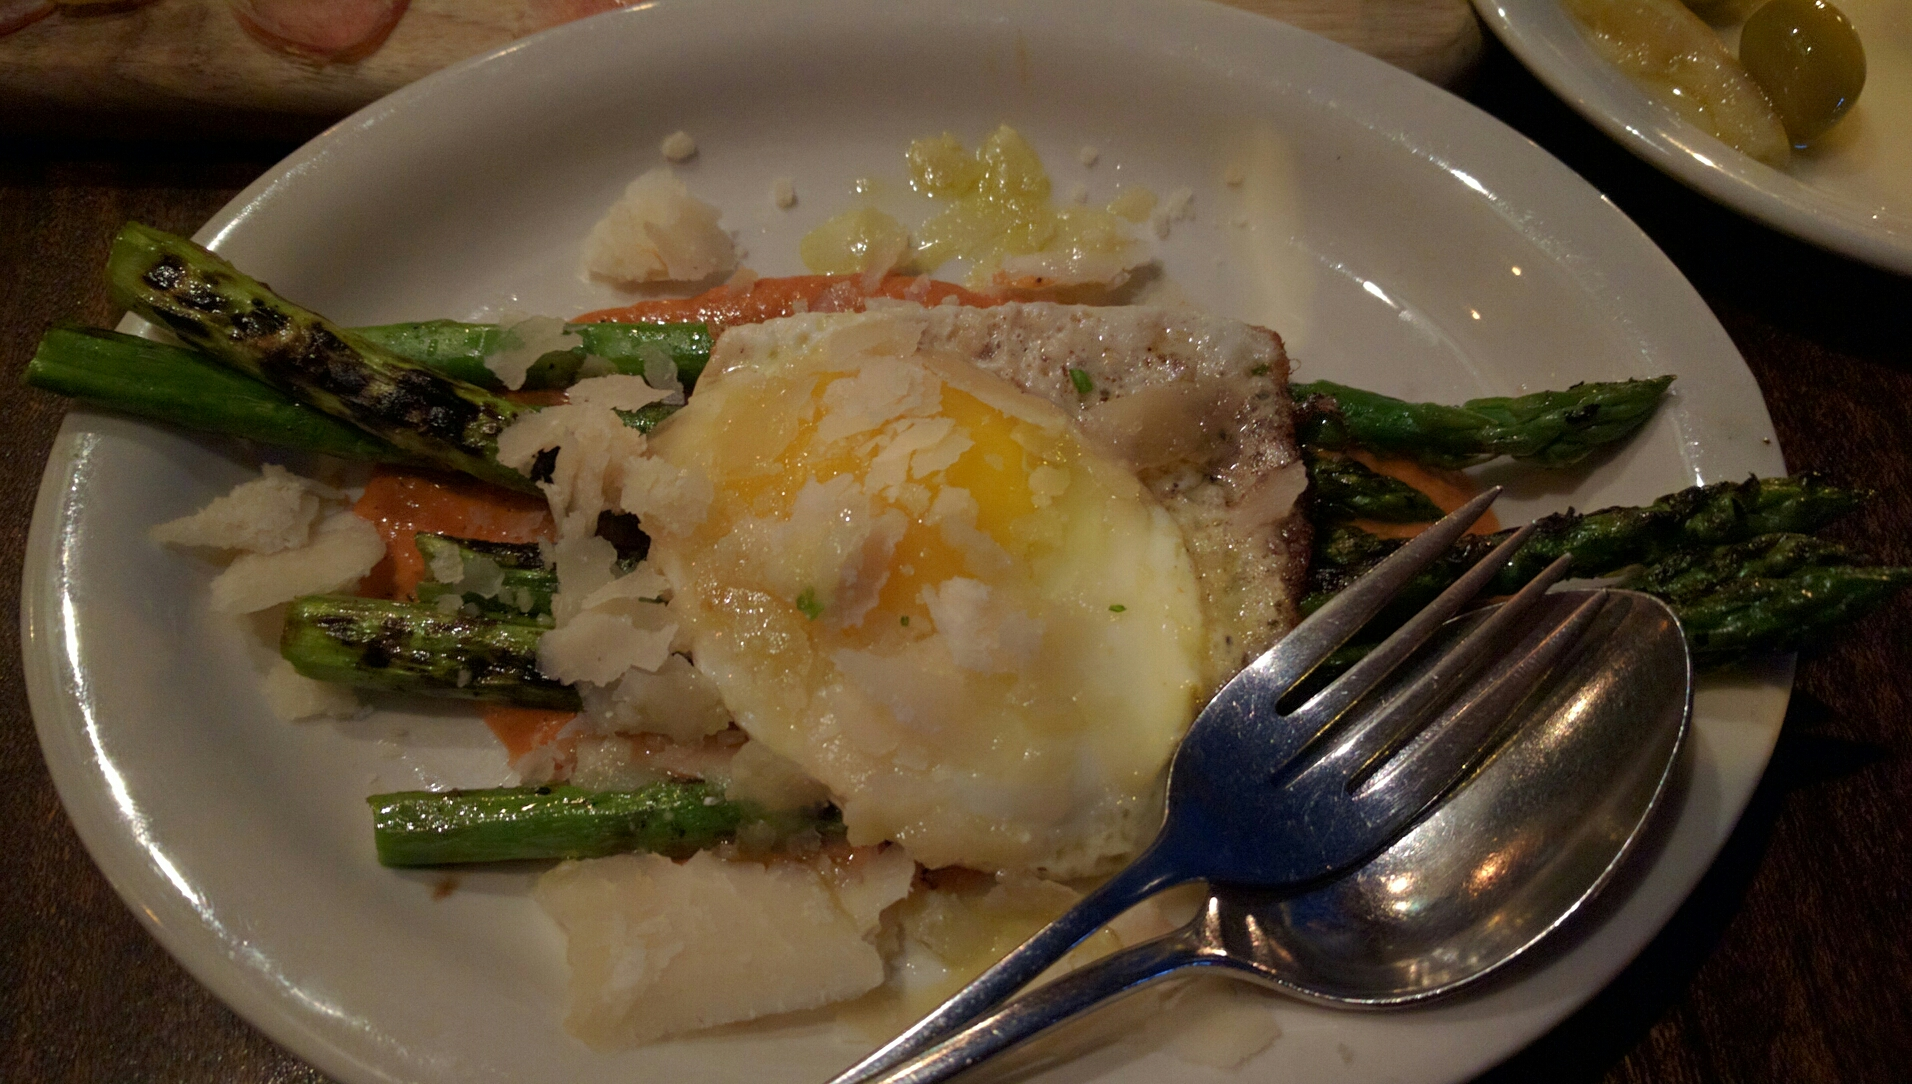 The roasted asparagus are divine, accompanied by manchengo, a tomato cream sauce, and topped with a fried egg.